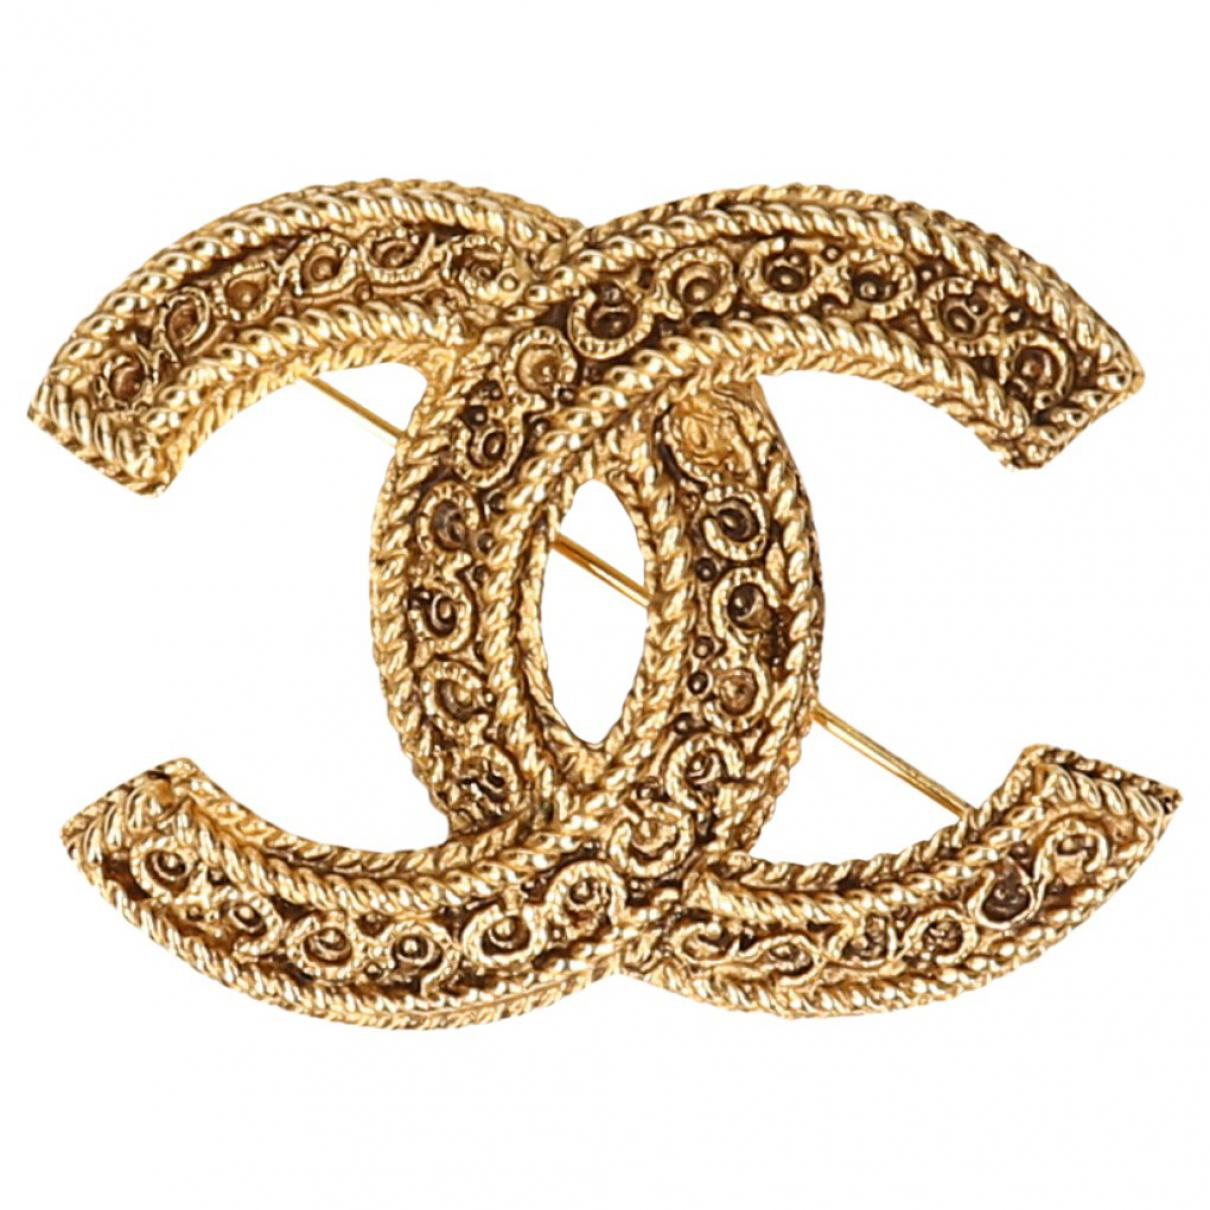 Chanel Pre-owned - Pin & brooche 4ixQgXeo